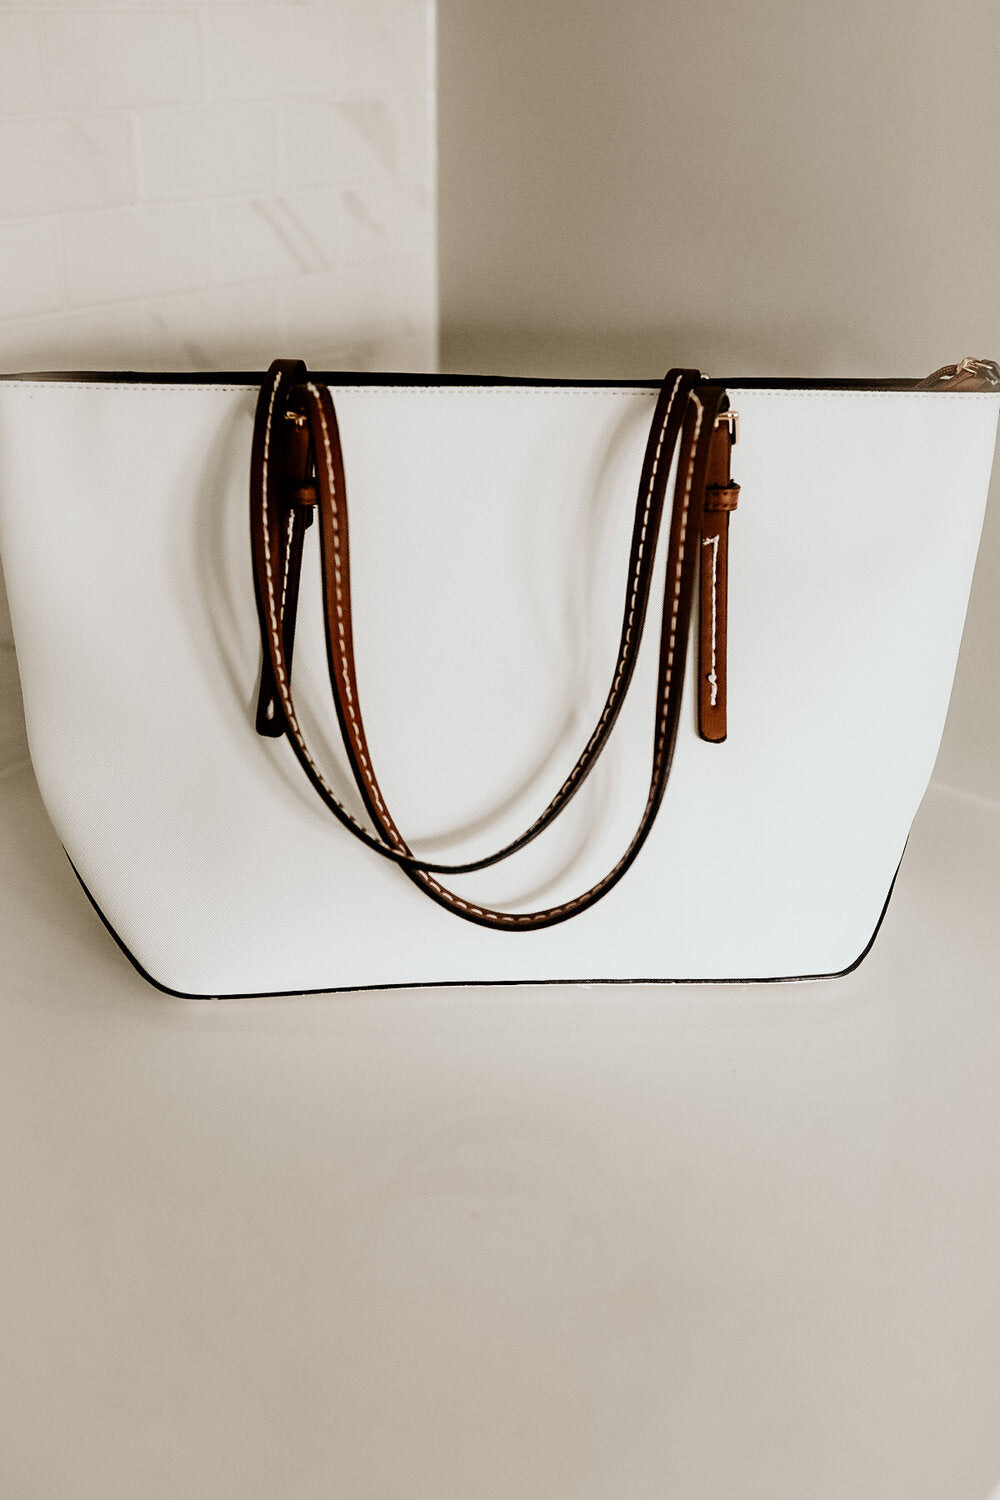 White Leather Tote/Handbag with Brown Leather Straps